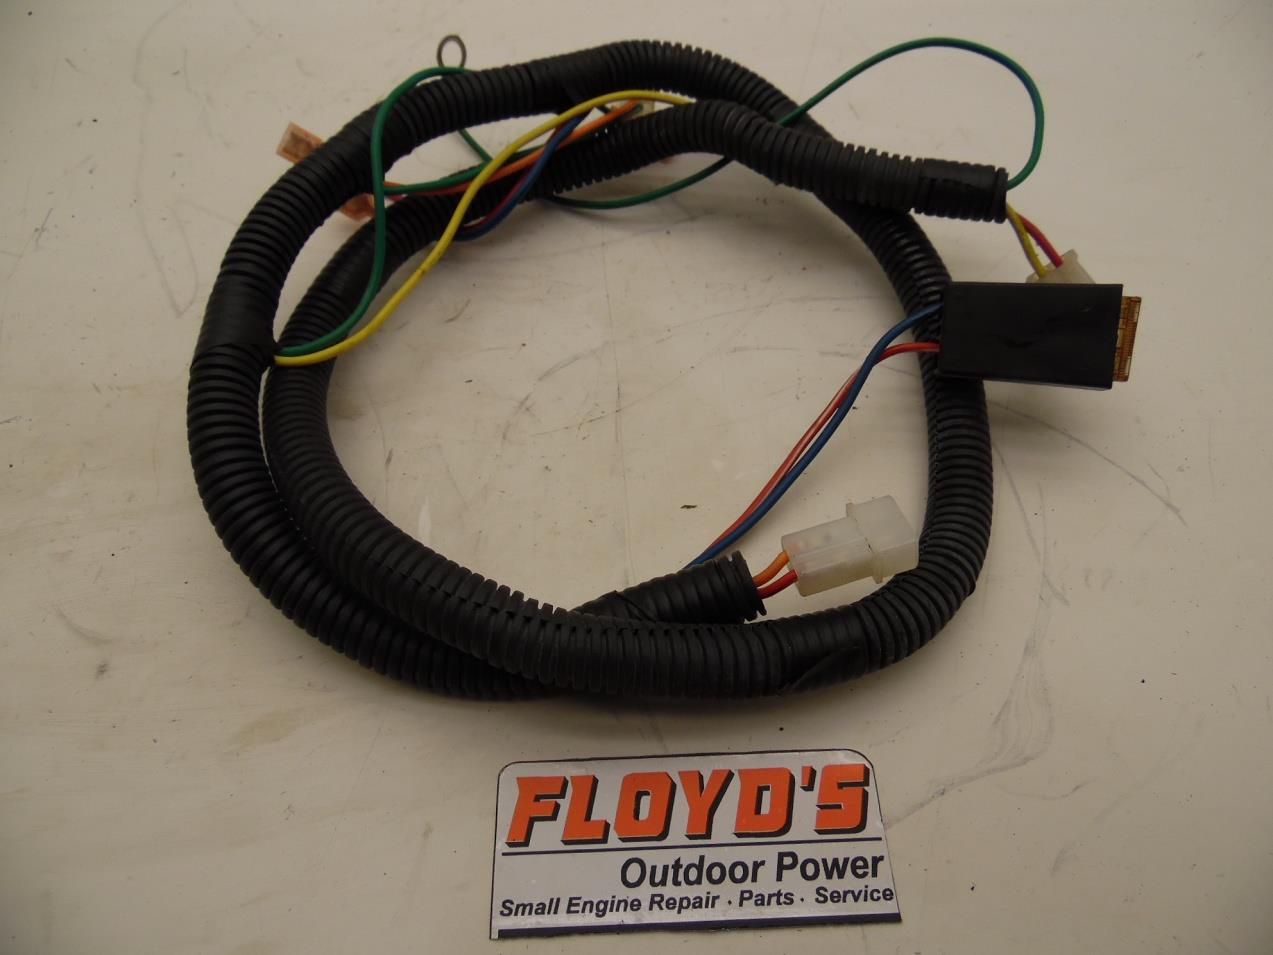 Troy Bilt Wiring Harness Diagram Libraries Storm 3090 30 Snowthrower 725 04216b 725troy 04216a